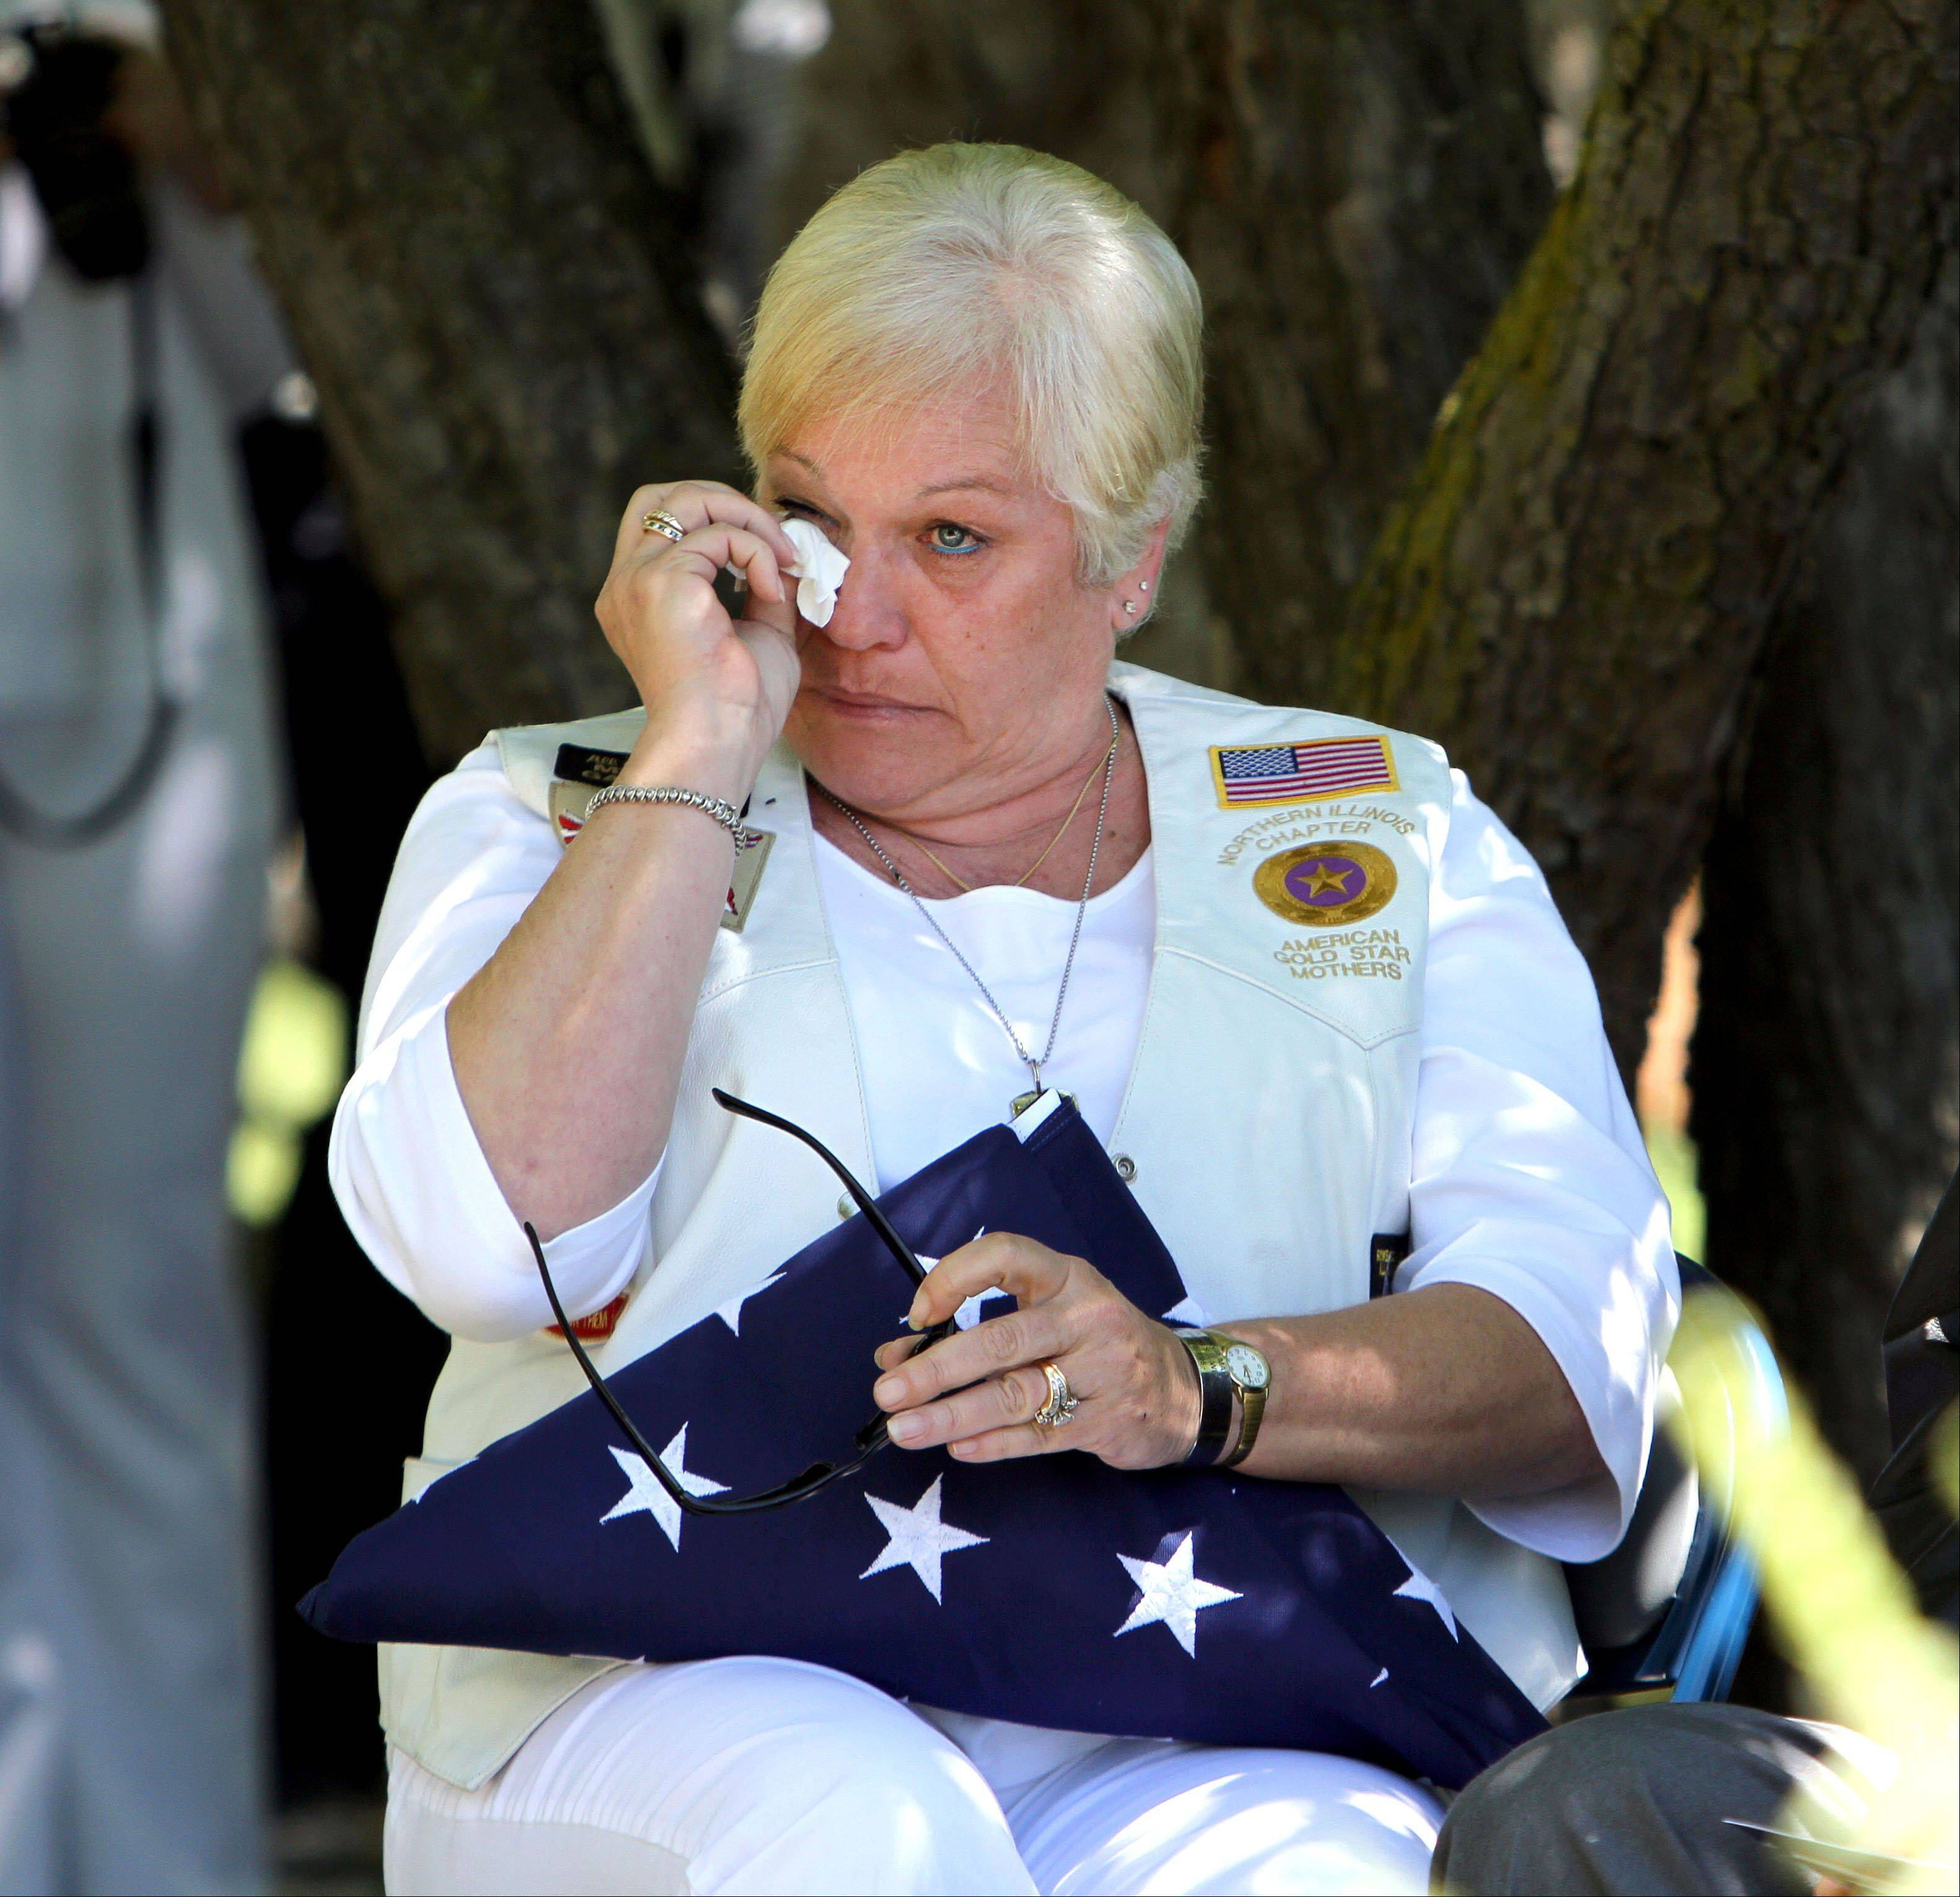 Janet Maher of Grayslake wipes tears from her eyes after being presented an American flag during the ceremony. Maher is the mother of Lance Cpl. Sean Maher, a Marine killed in Iraq in 2005.